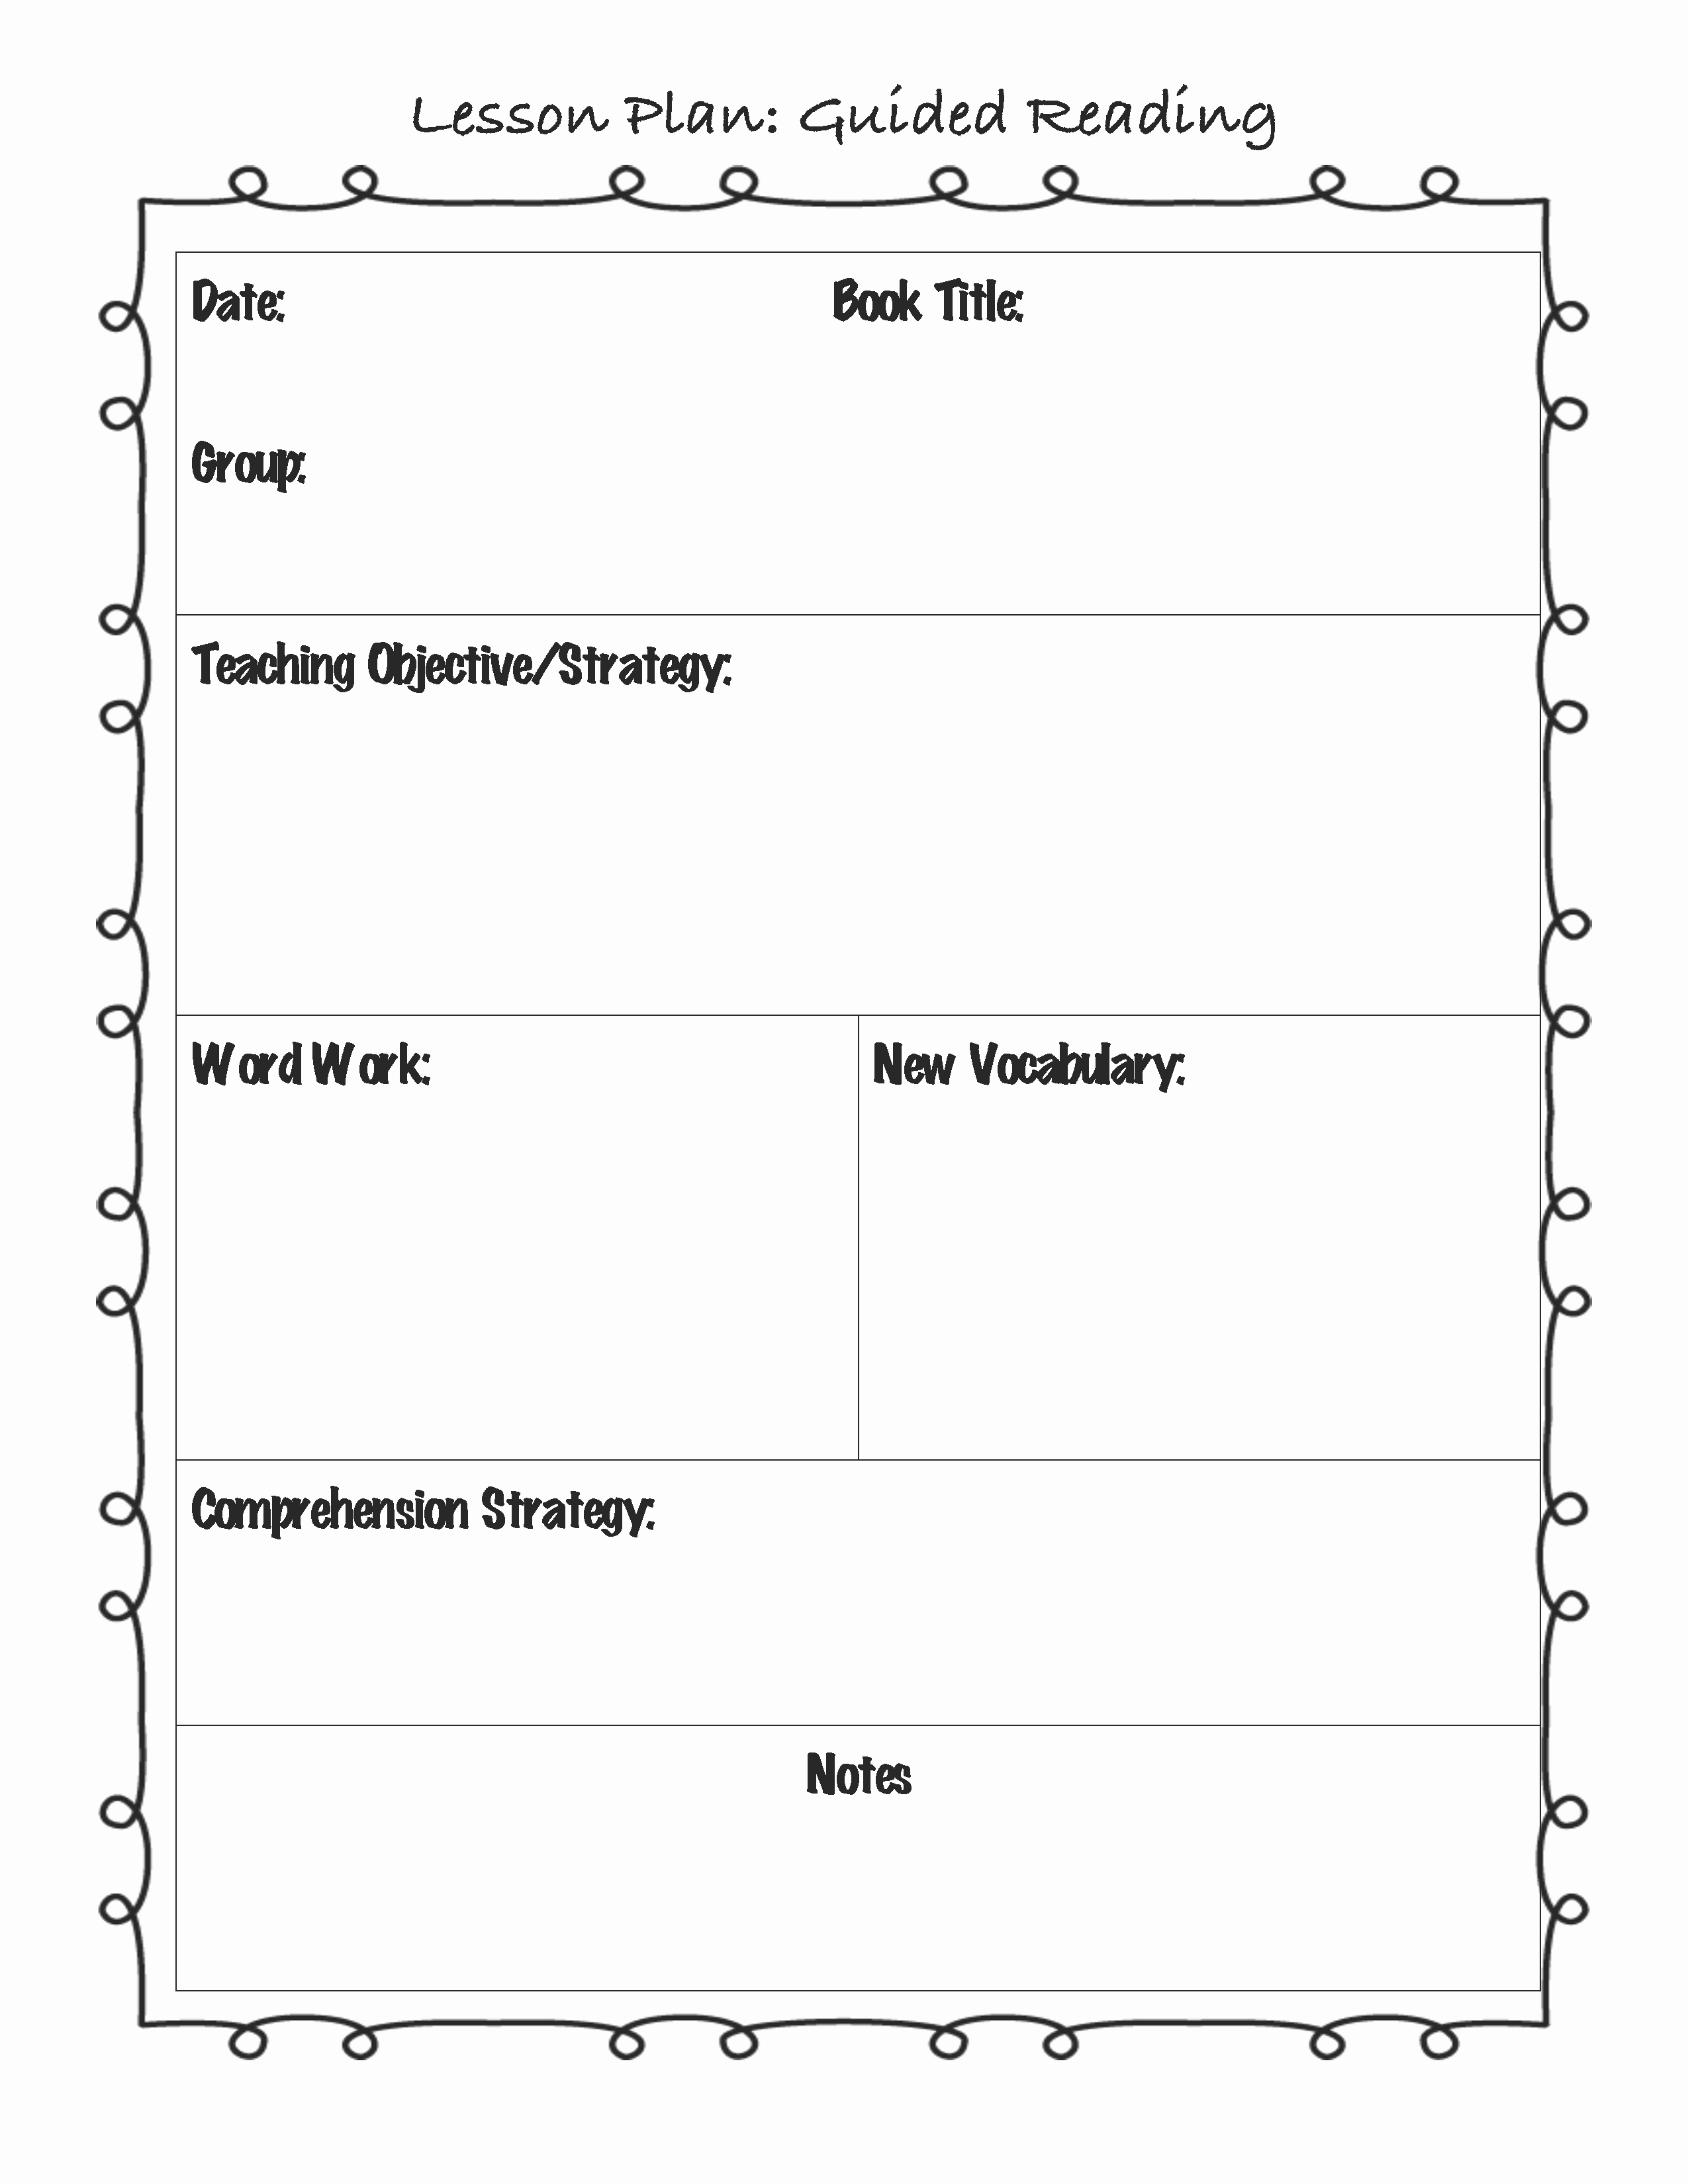 Guided Math Lesson Plan Template Lovely 12th Grade Reading Lesson Plans 1000 Ideas About Lesson